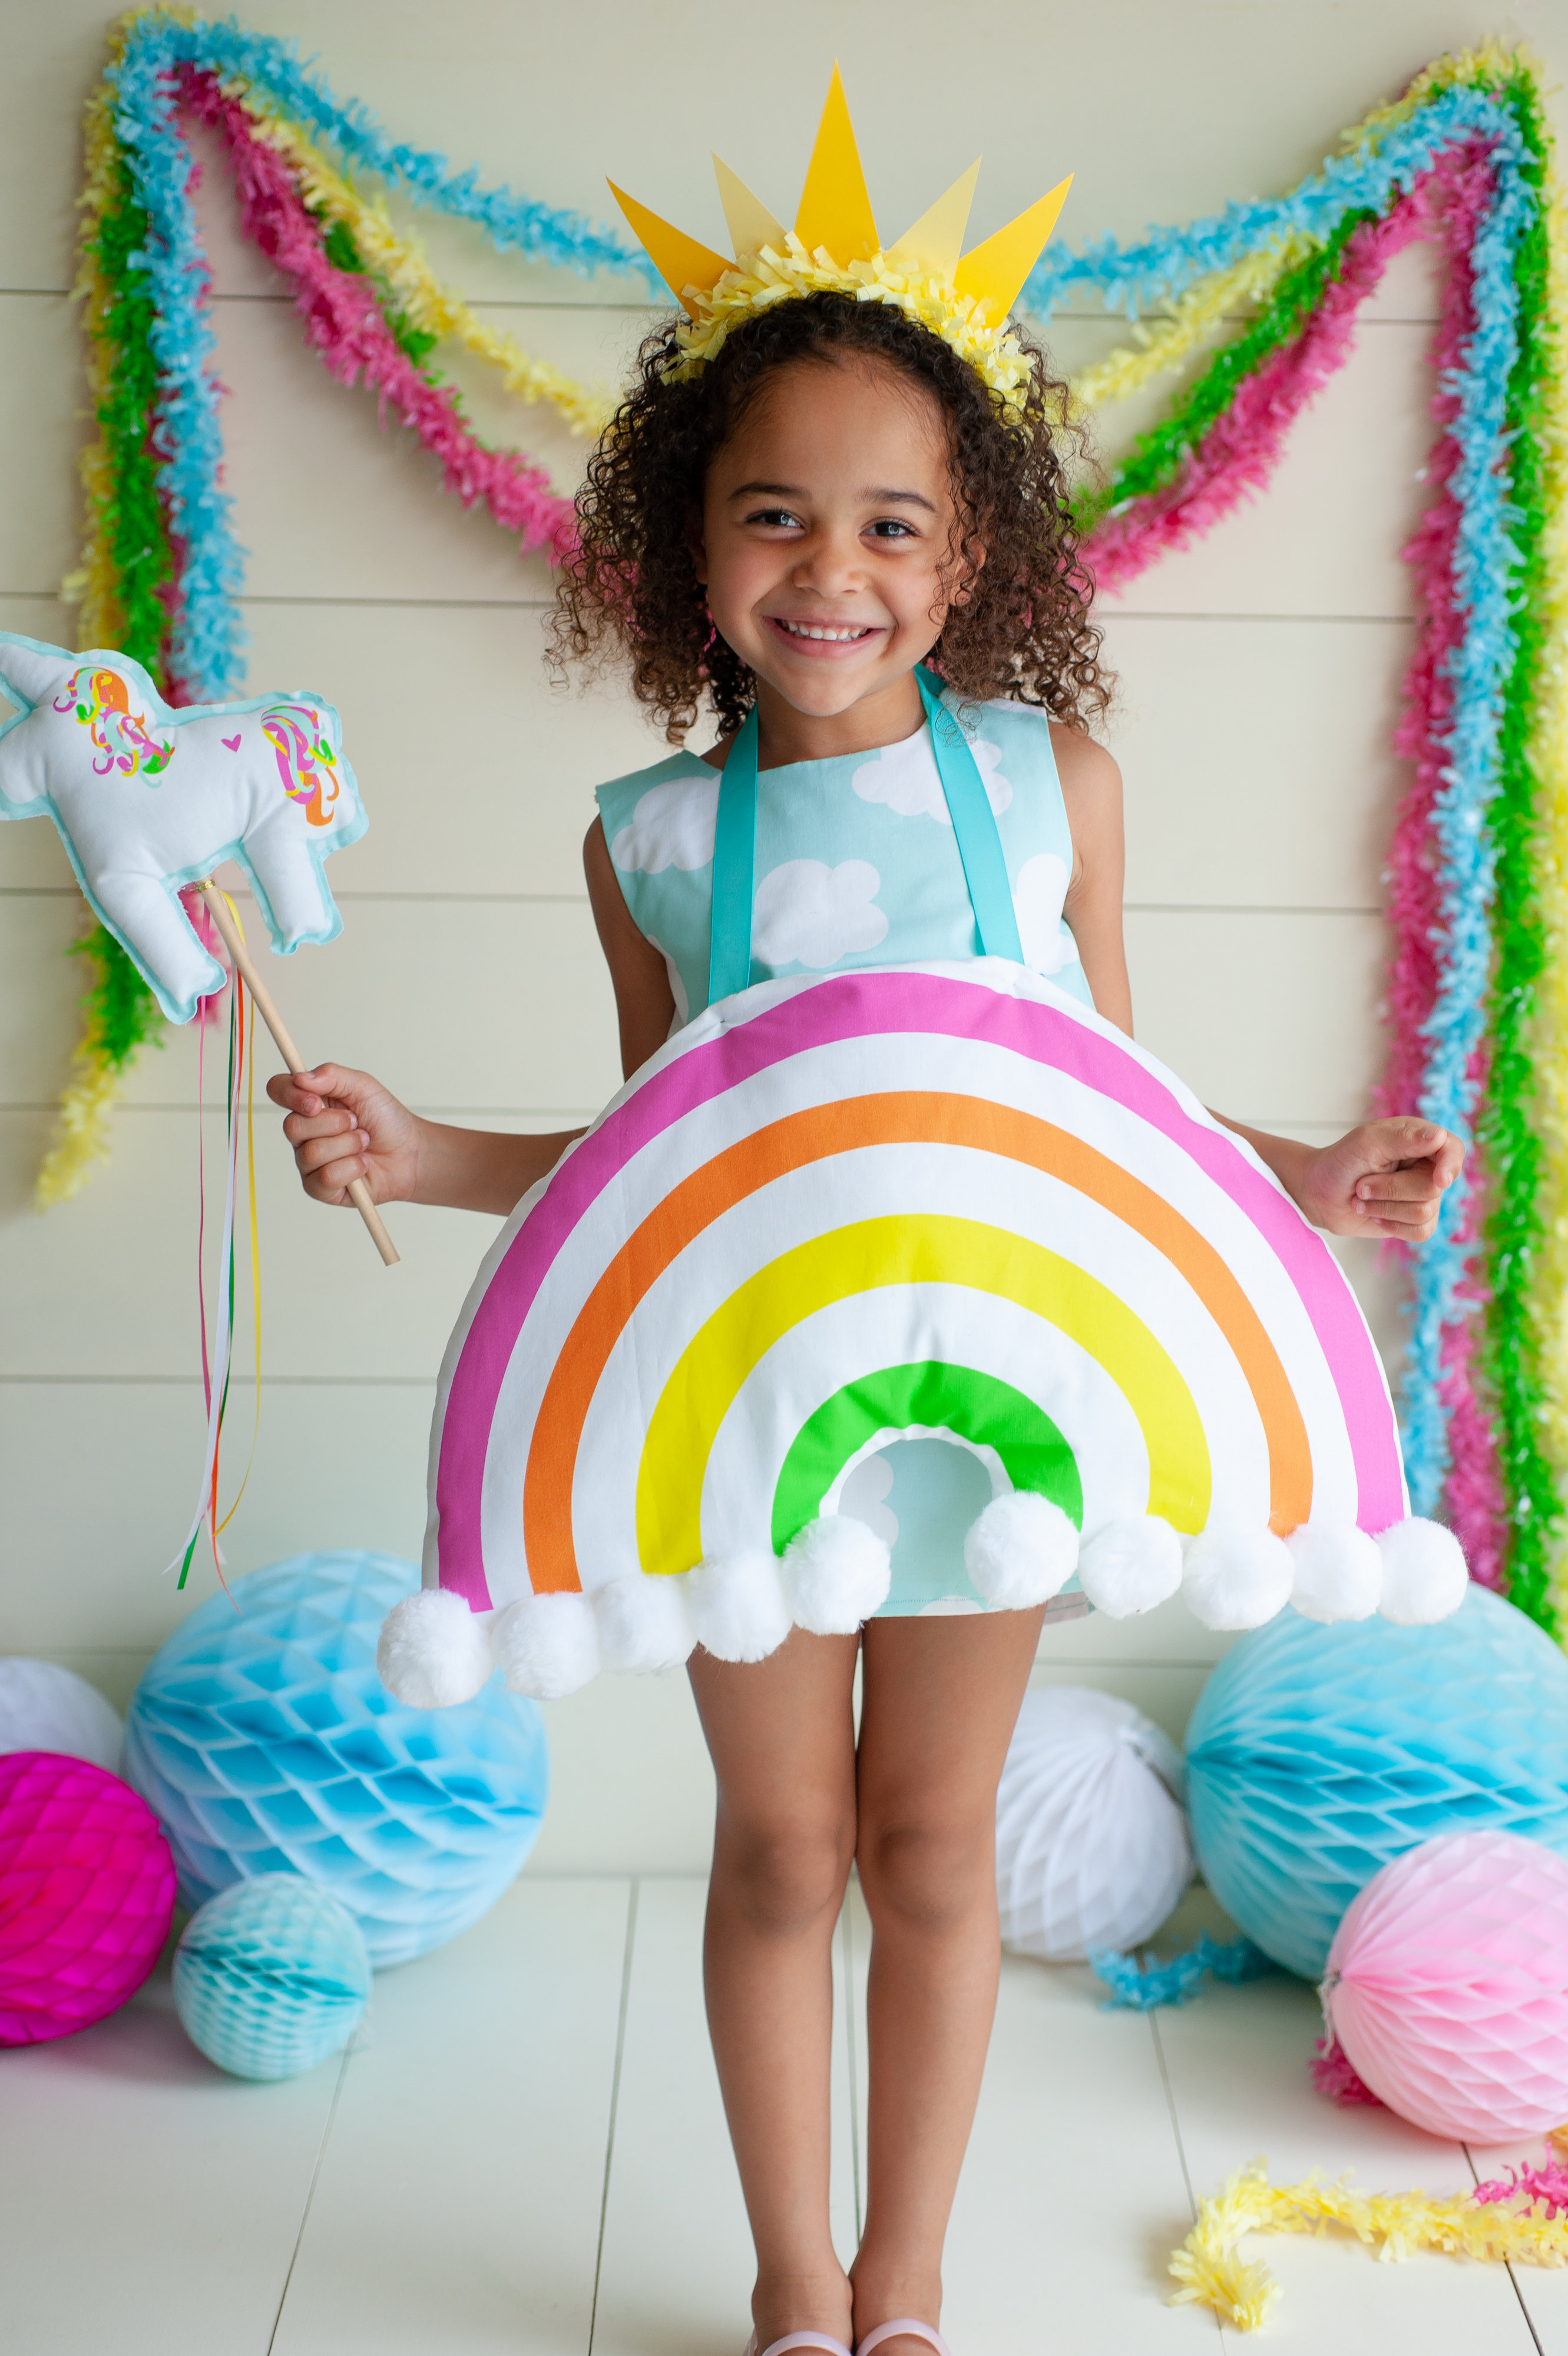 Handmade Halloween: DIY Kid's Rainbow Costume | Spoonflower Blog